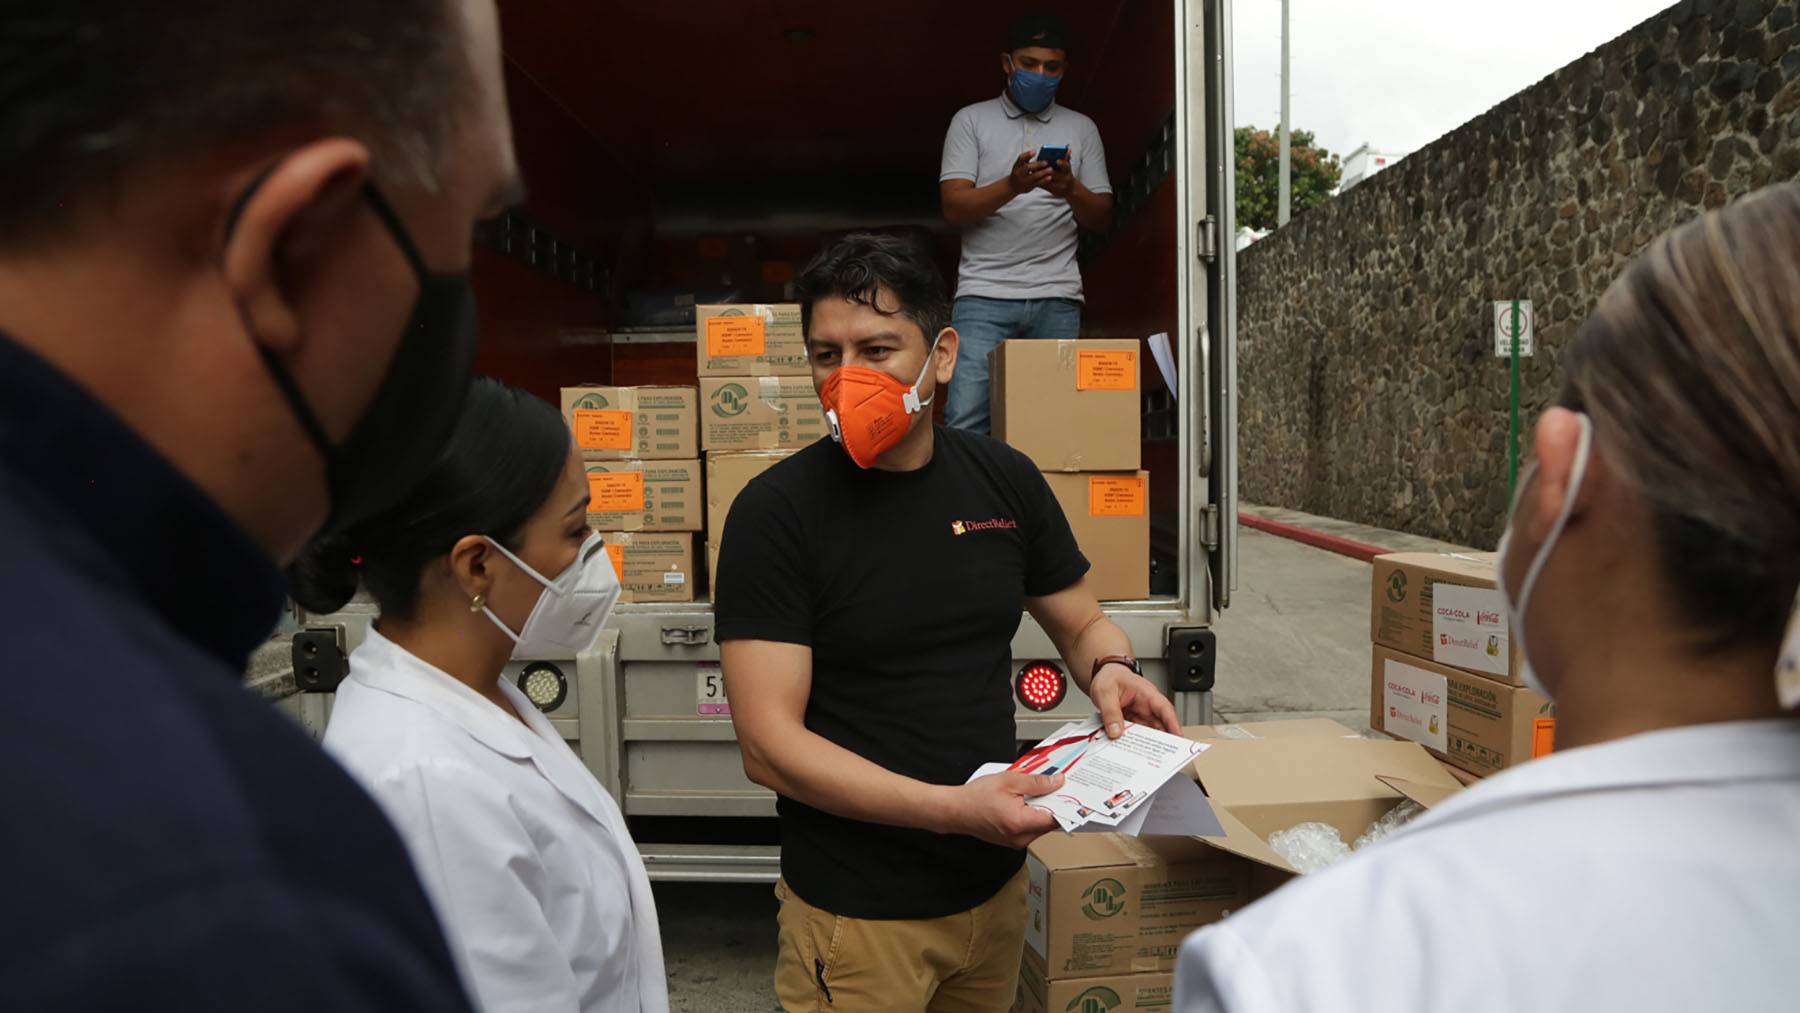 A shipment of protective gear from Direct Relief arrives in Morelos, Mexico, on June 30, 2020, for medical staff treating patients at the Mexican Institute of Social Security, or IMSS, a hospital in Cuernavaca treating Covid-19 patients. (Felipe Luna for Direct Relief)